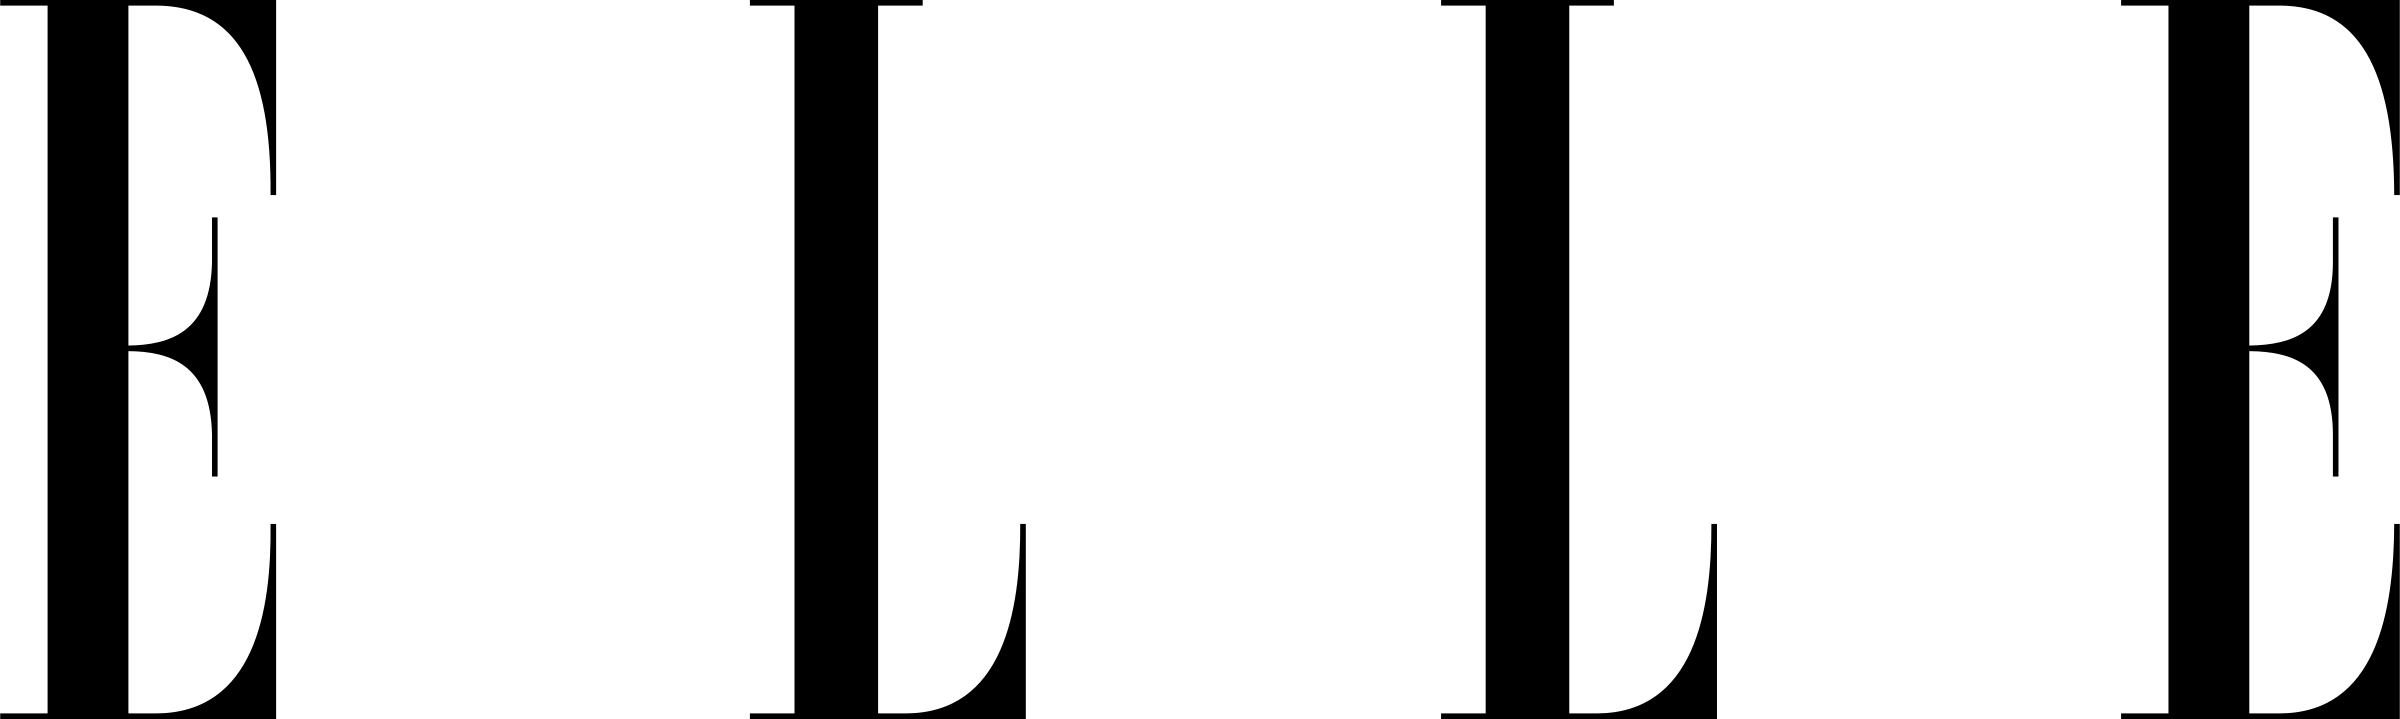 elle-2-logo-black-and-white.png